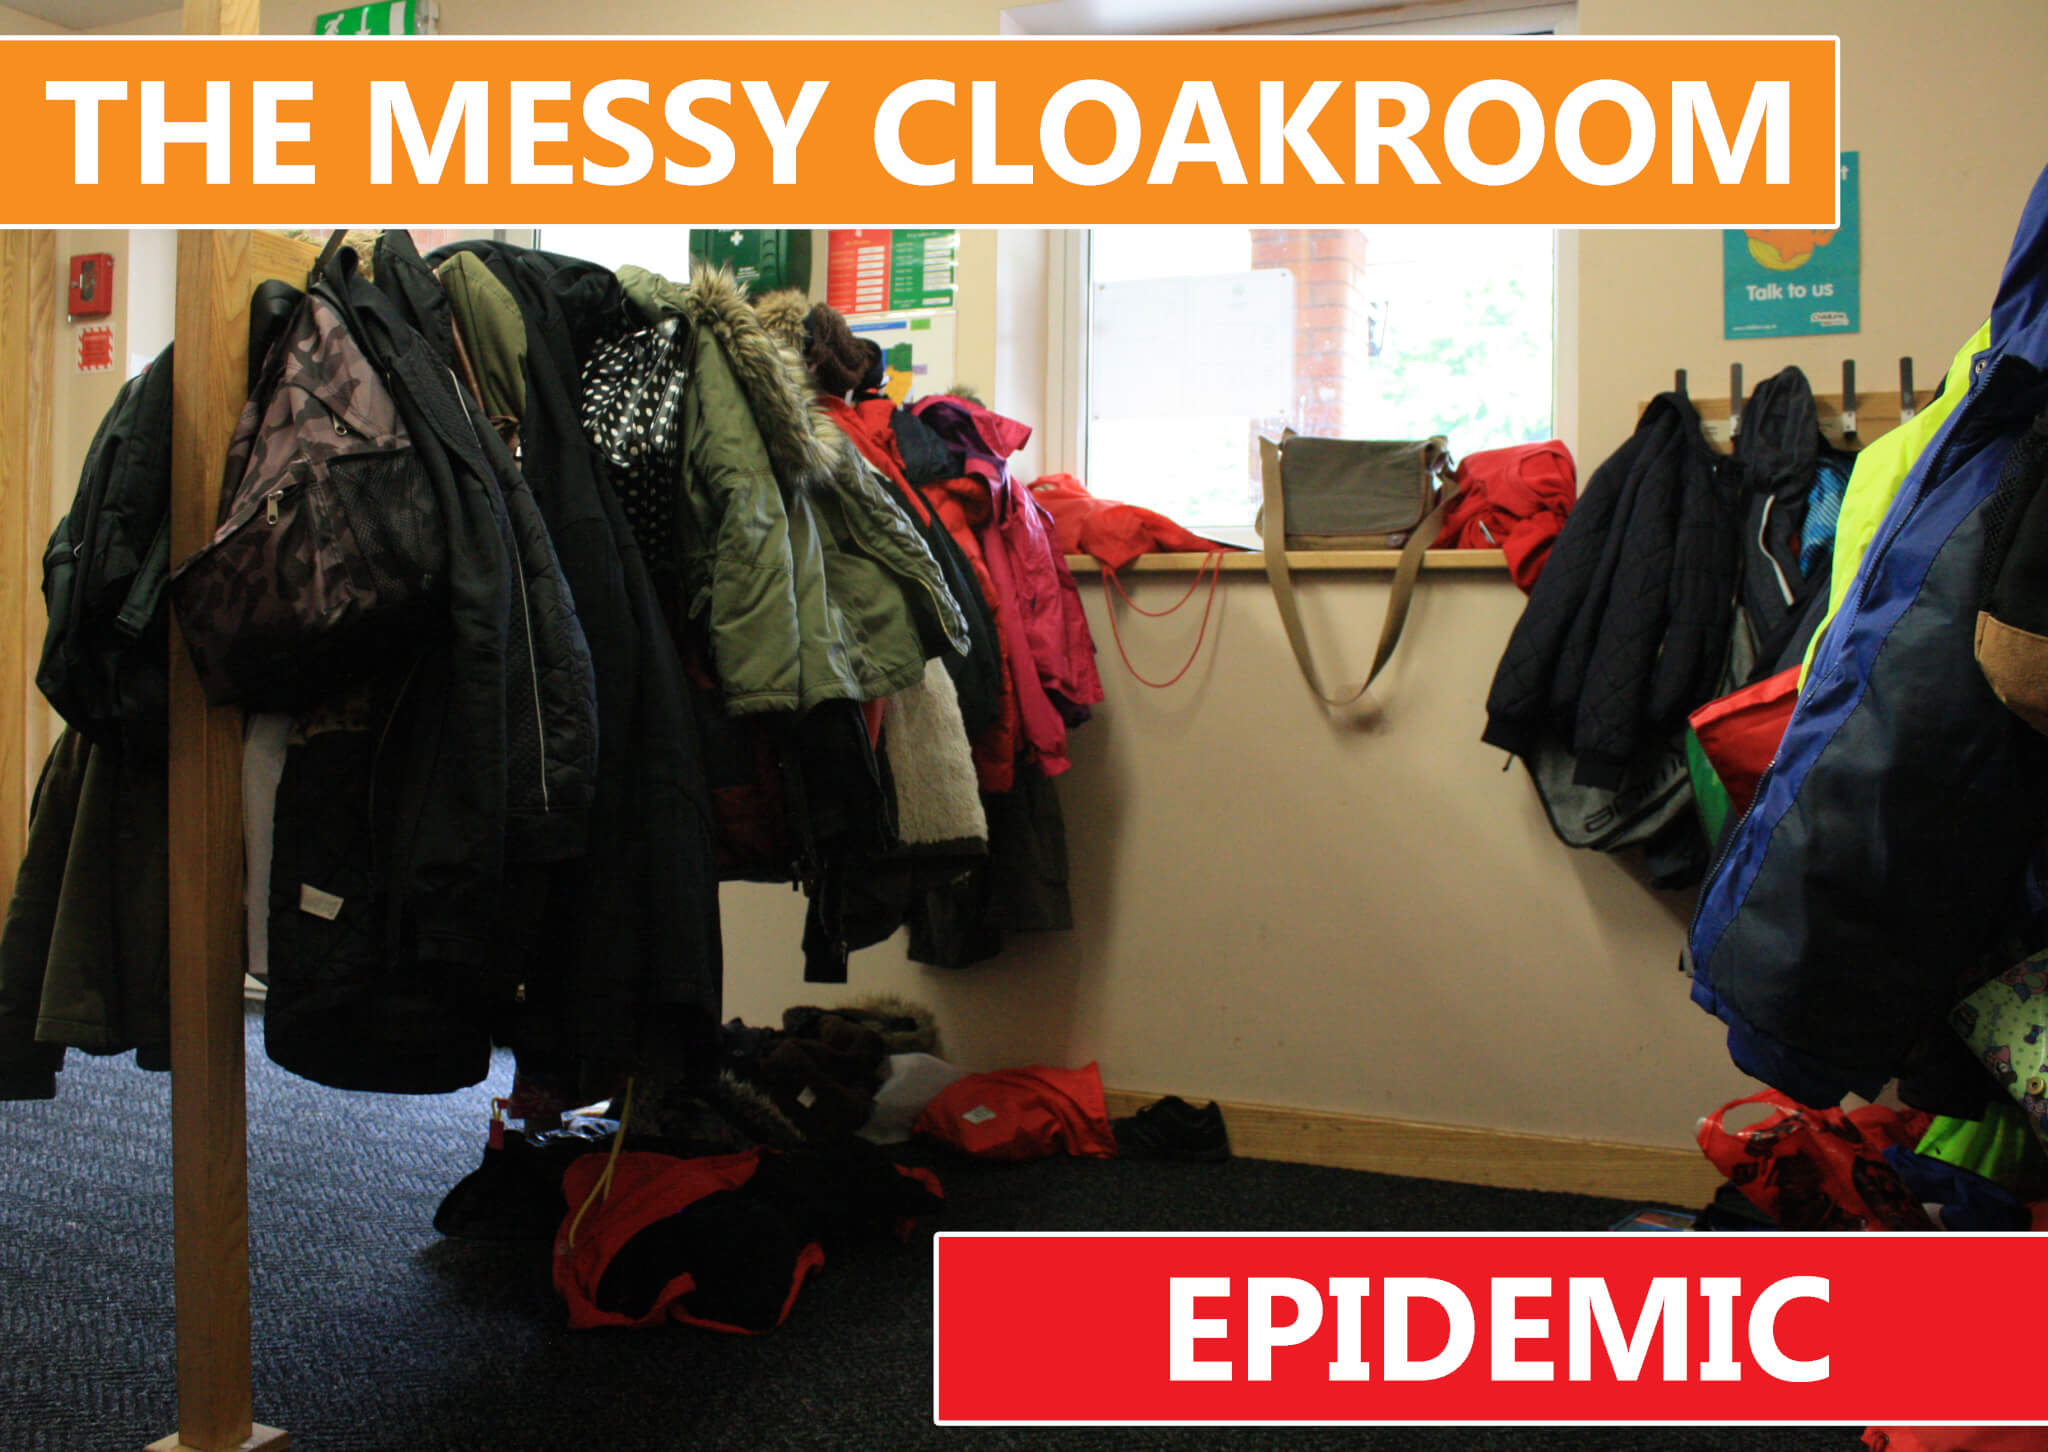 MESSY CLOAKROOM EPIDEMIC